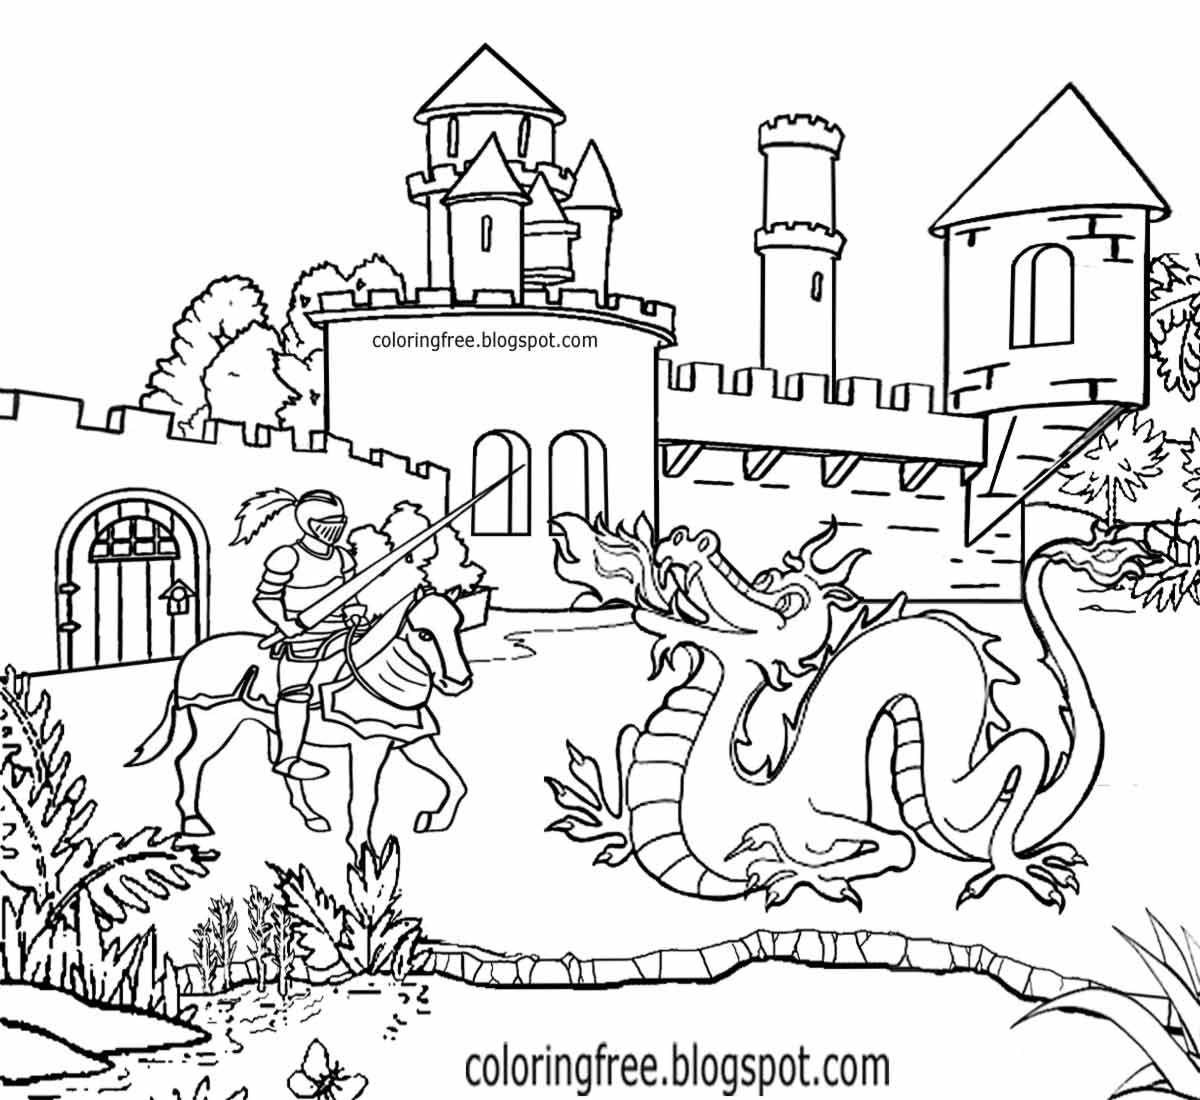 knight fighting dragon coloring page knight fighting dragon drawing at paintingvalleycom dragon fighting page knight coloring